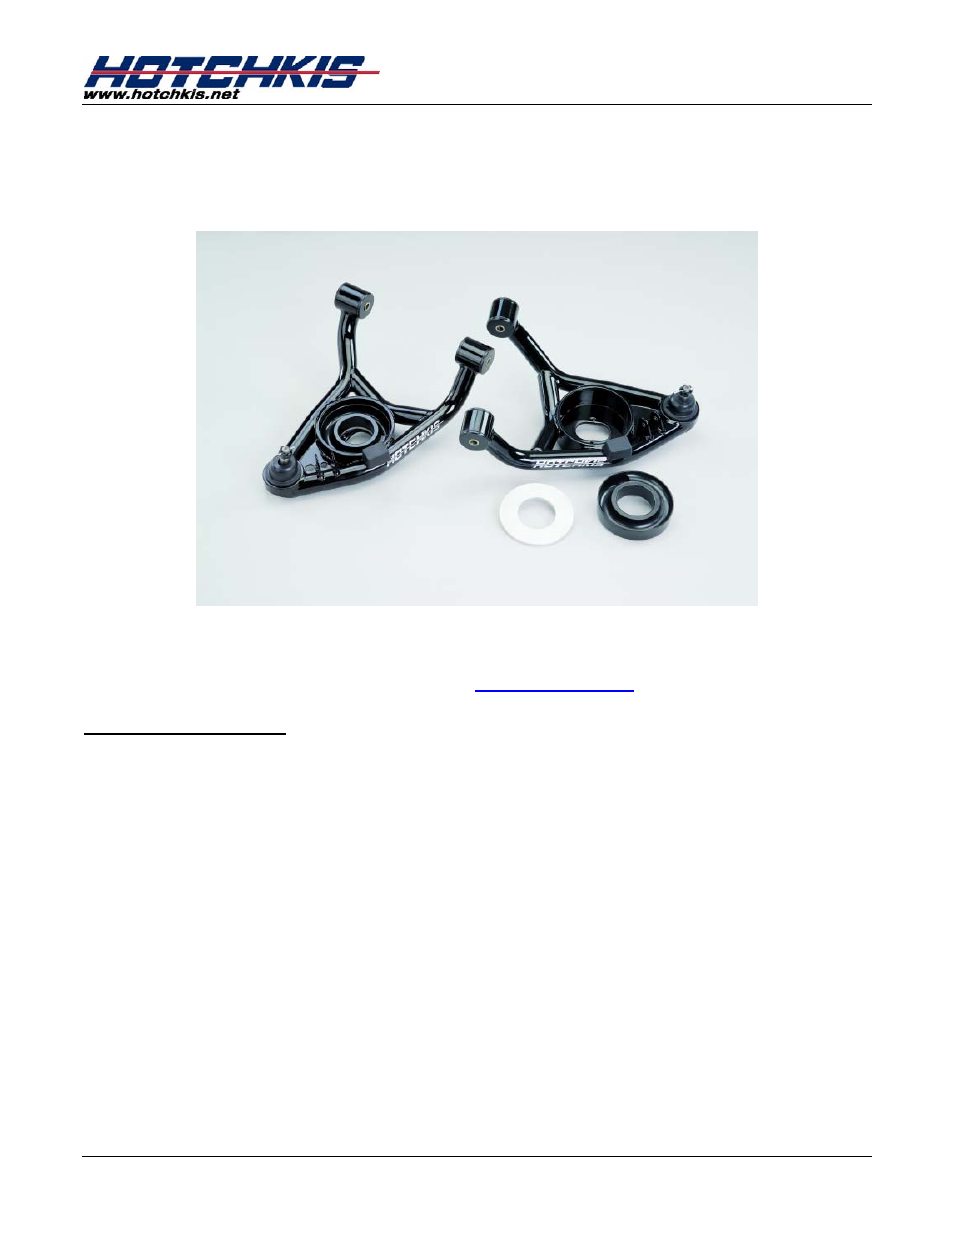 Hotchkis 1104 Tubular Lower A-Arms 64-72 GM A-Body User